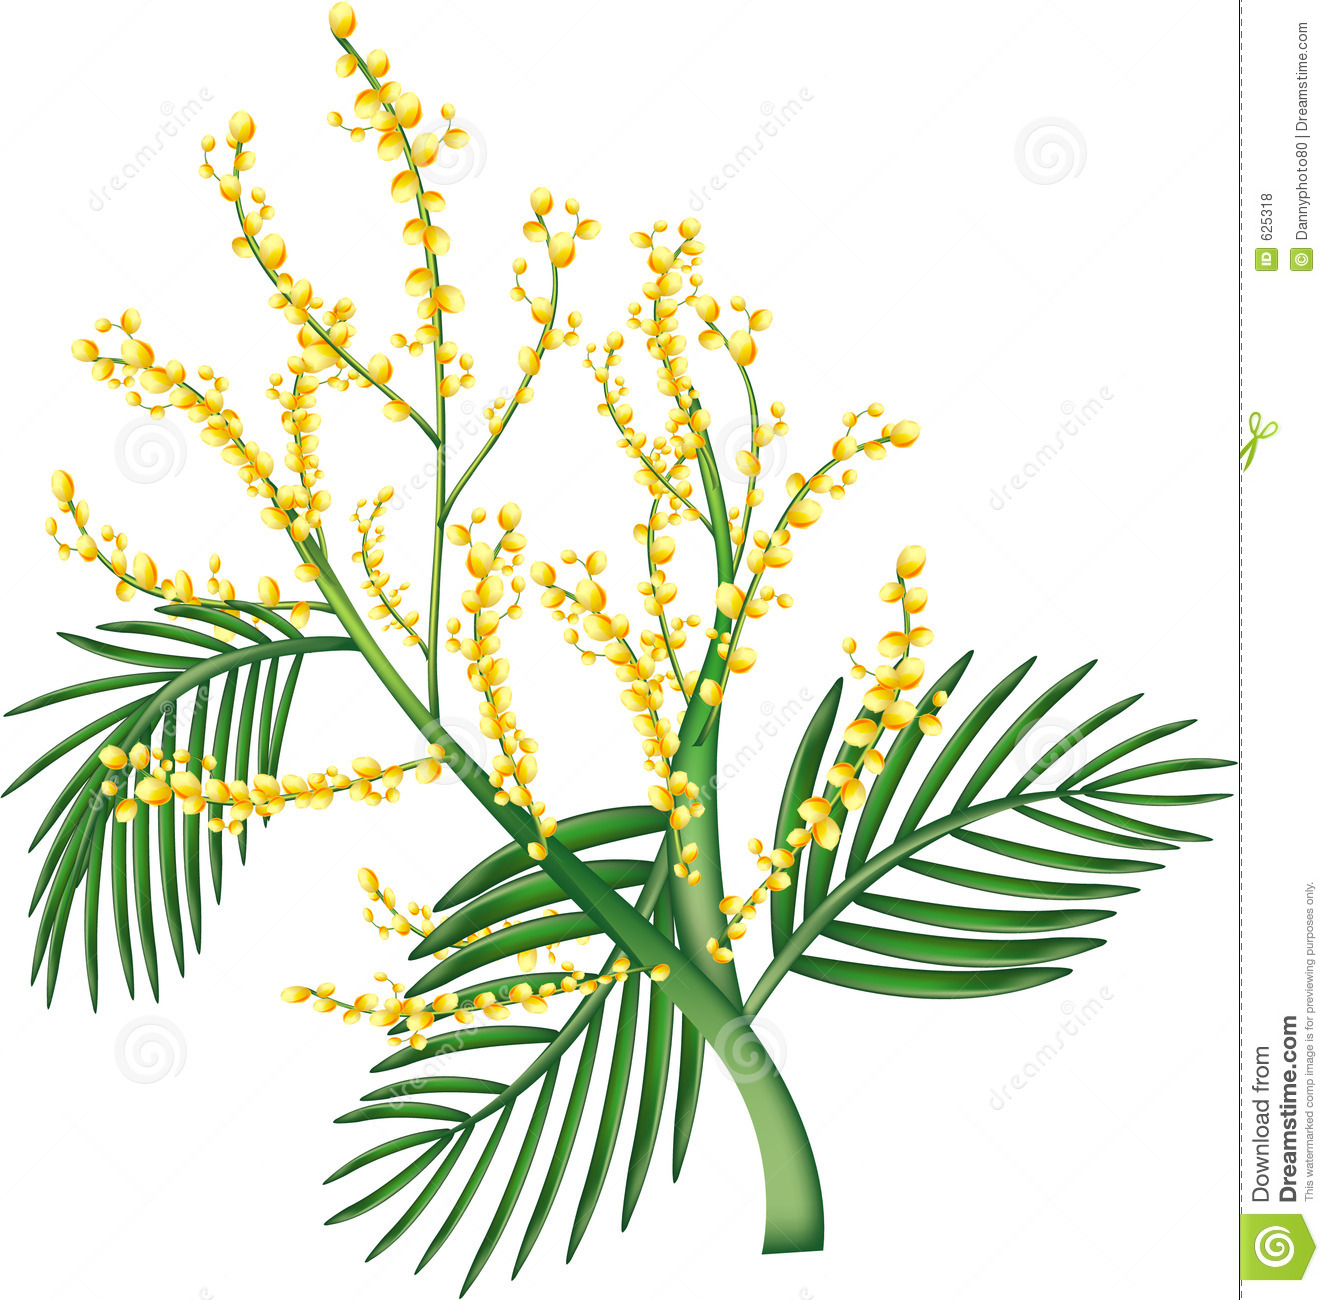 Australian Wattle Royalty Free Stock Photos.